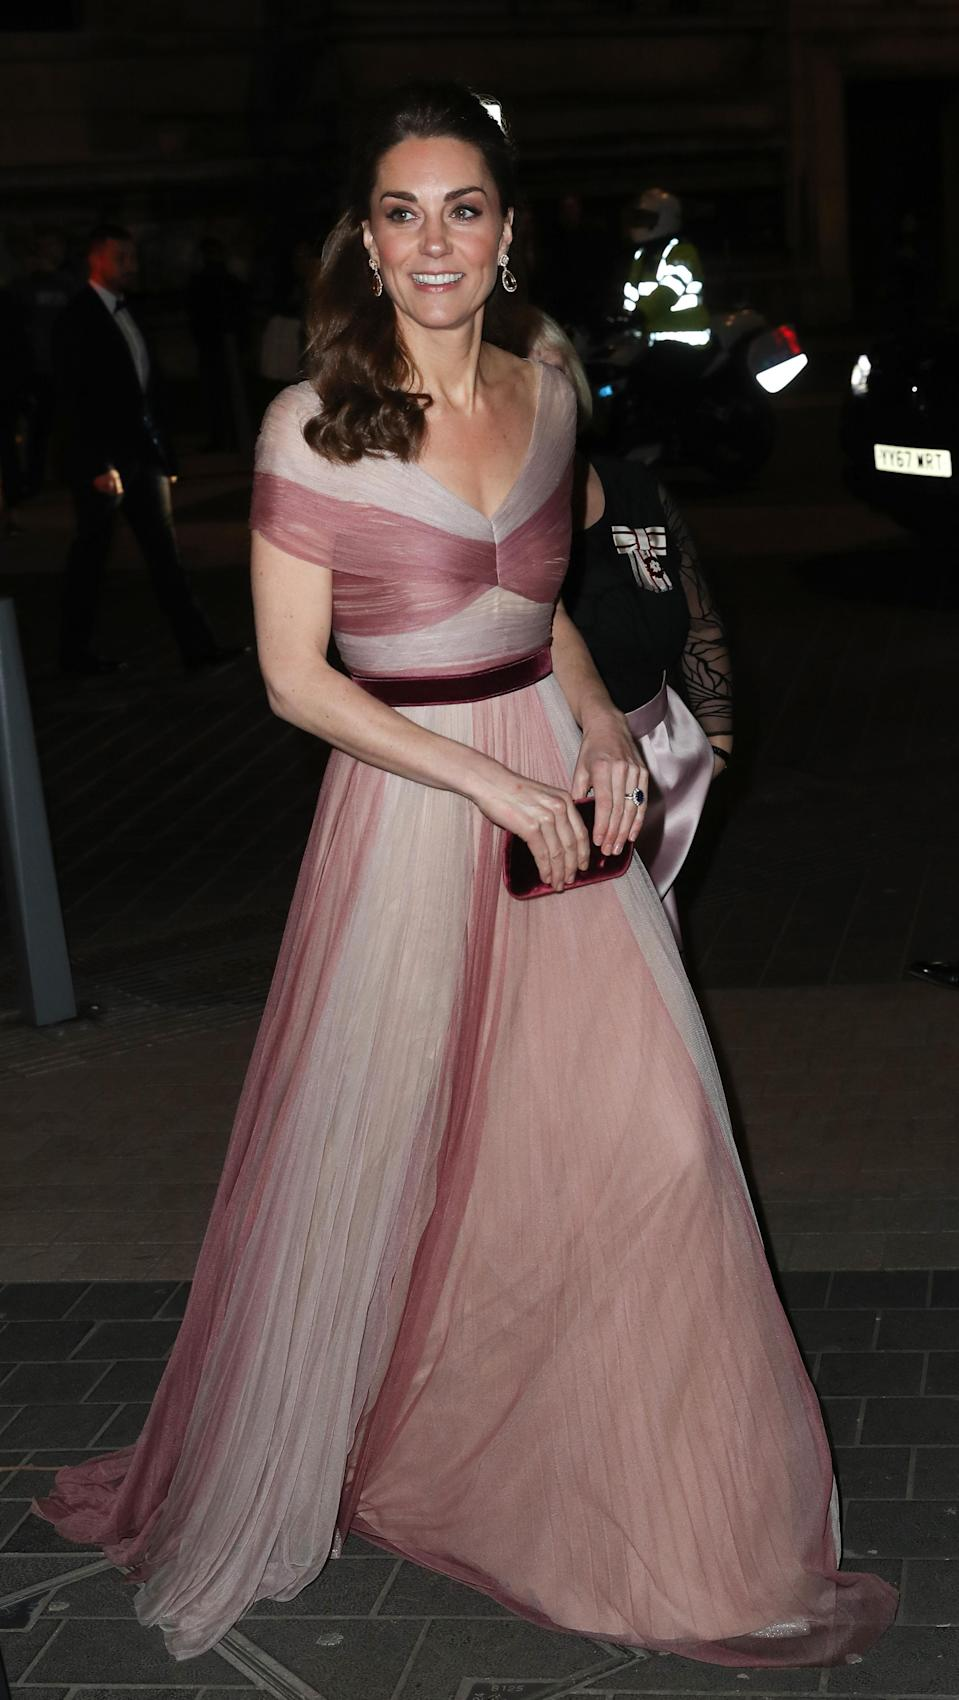 For the 100 Women in Finance gala dinner, Kate looked stunning in a pink and cream Gucci chiffon gown with a velvet belt. She teamed it with her glittering Oscar de la Renta 'Cabrina' pumps and her Prada clutch bag, accessorising with her Kiki McDonough pink morganite earrings. [Photo: Getty]